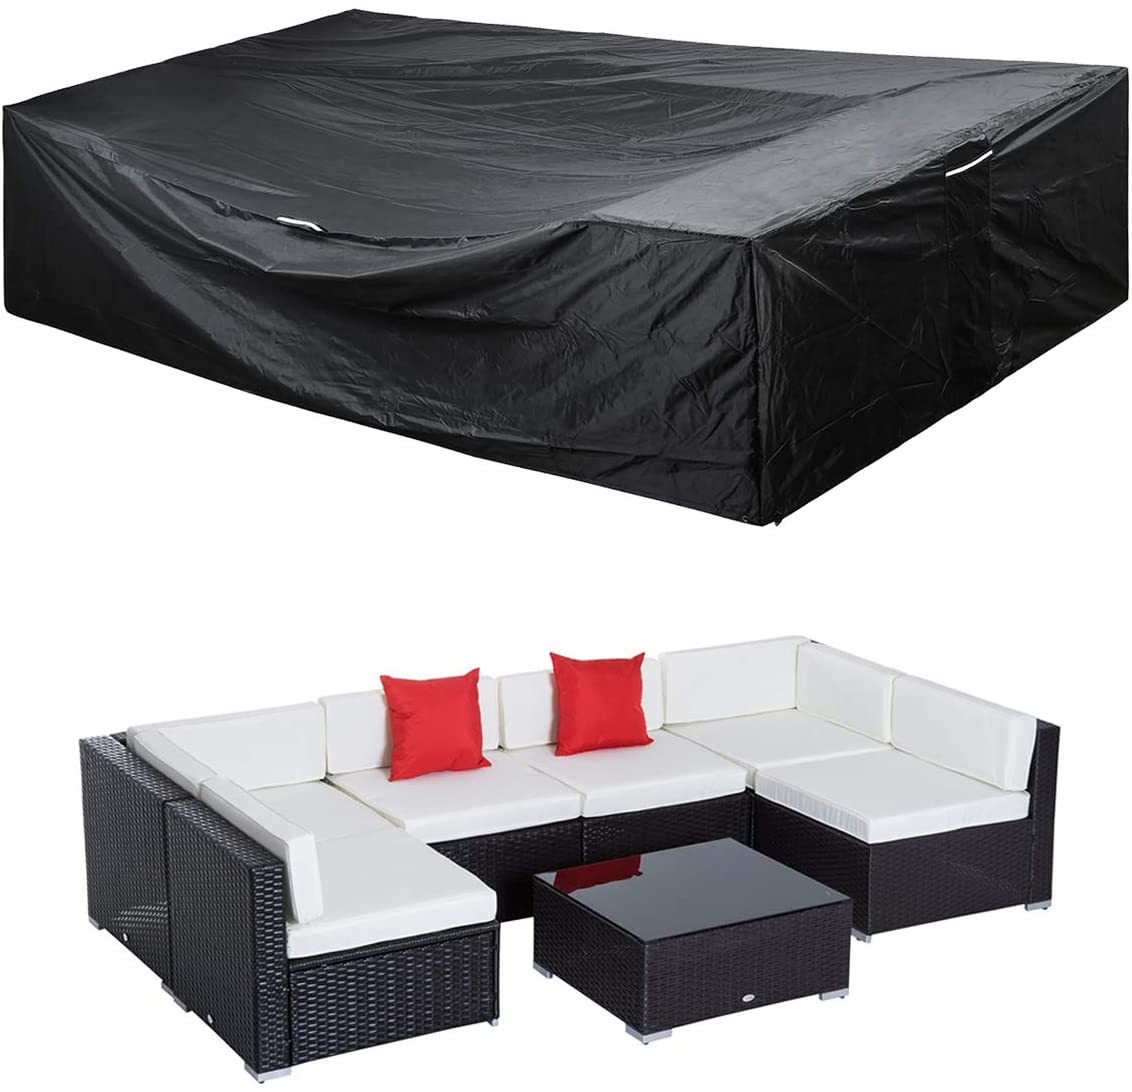 Patio Furniture Set Cover Outdoor Sectional Sofa Set Covers Waterproof Outdoor Dining Table Chair Set Cover Heavy Duty 90